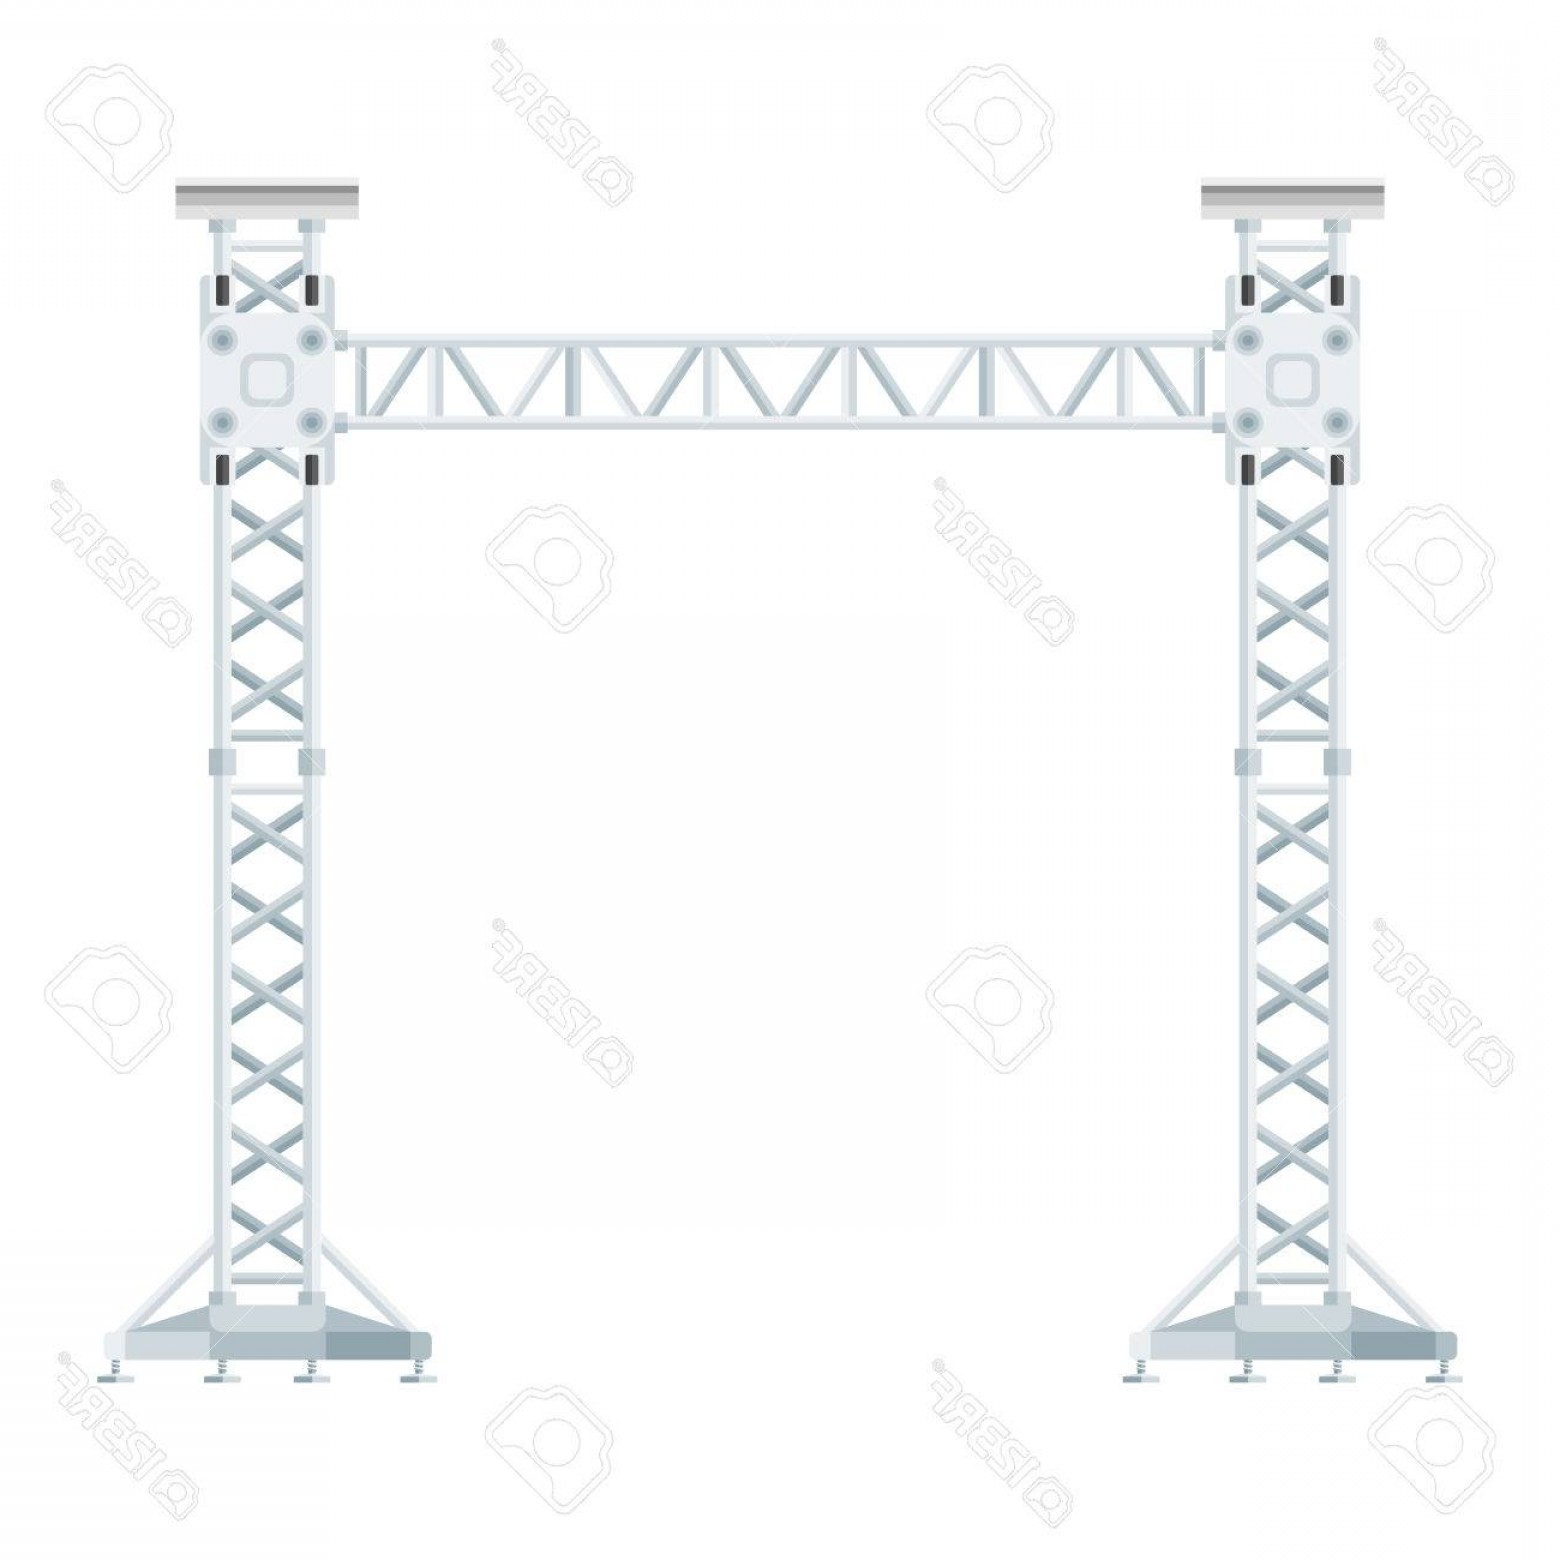 Aluminum Truss Design Vector: Photostock Vector Vector Flat Design Stage Sound Lighting Aluminum Truss Tower Lift Construction Illustration